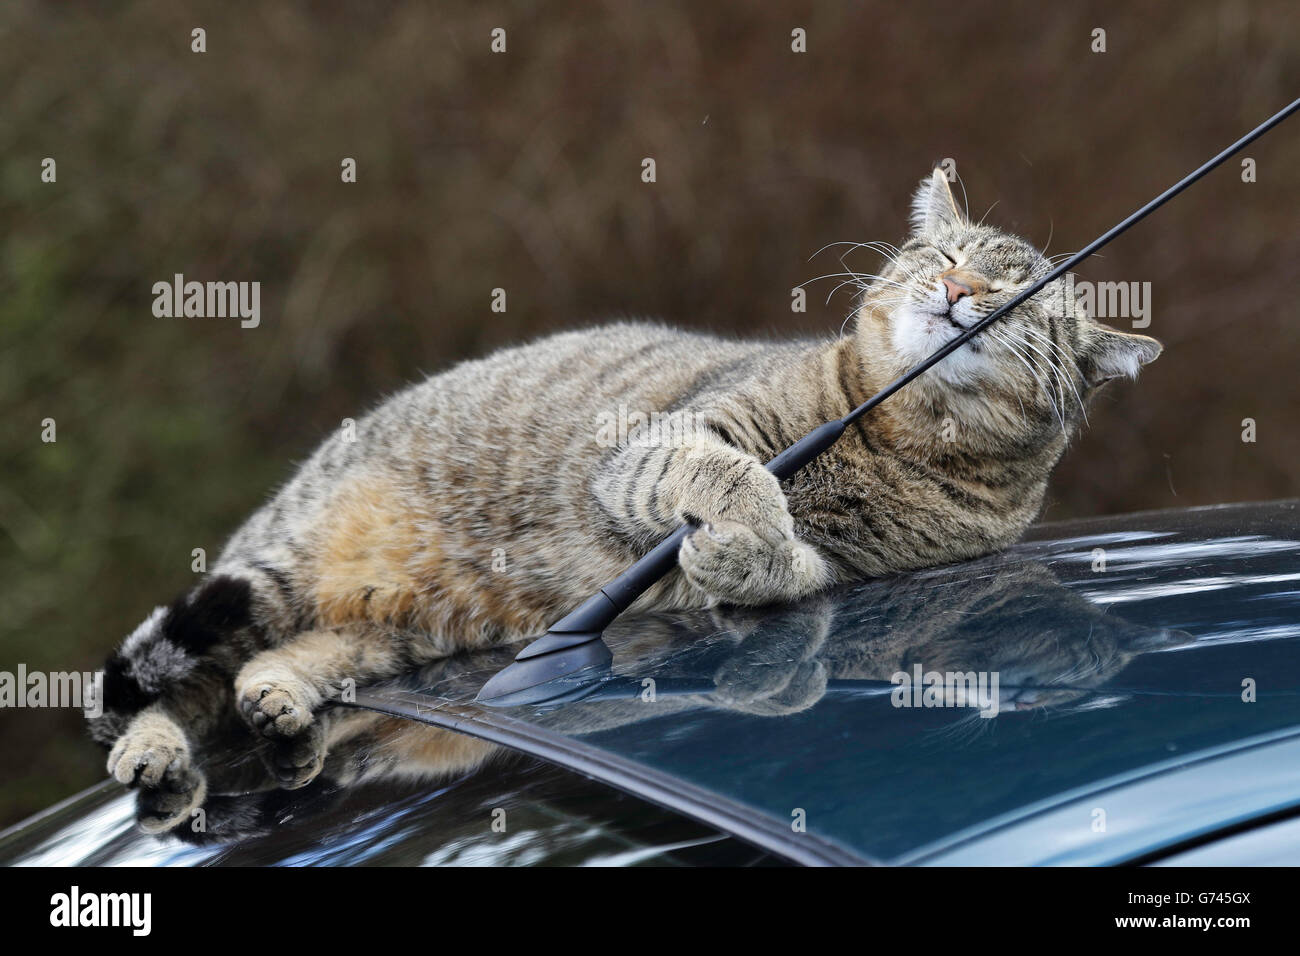 Domestic Cat on car roof, Germany - Stock Image